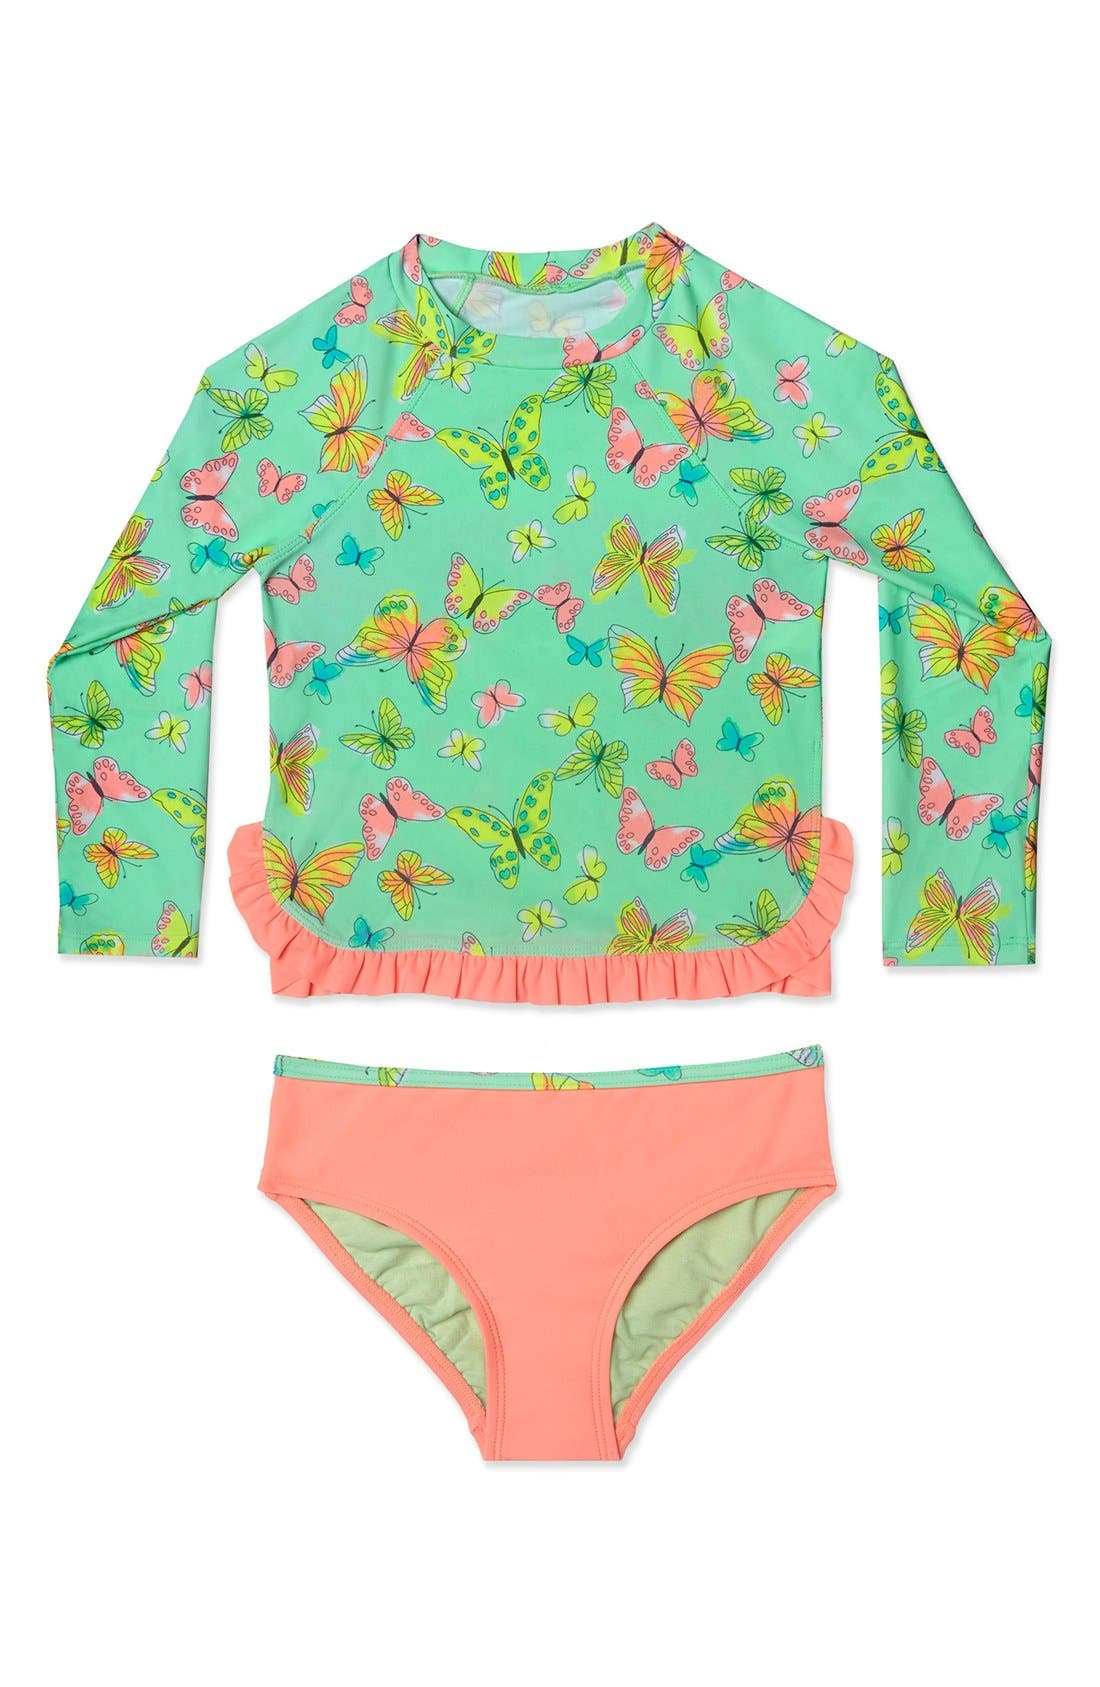 'Butterfly' Two-Piece Rashguard Swimsuit,                         Main,                         color, 332